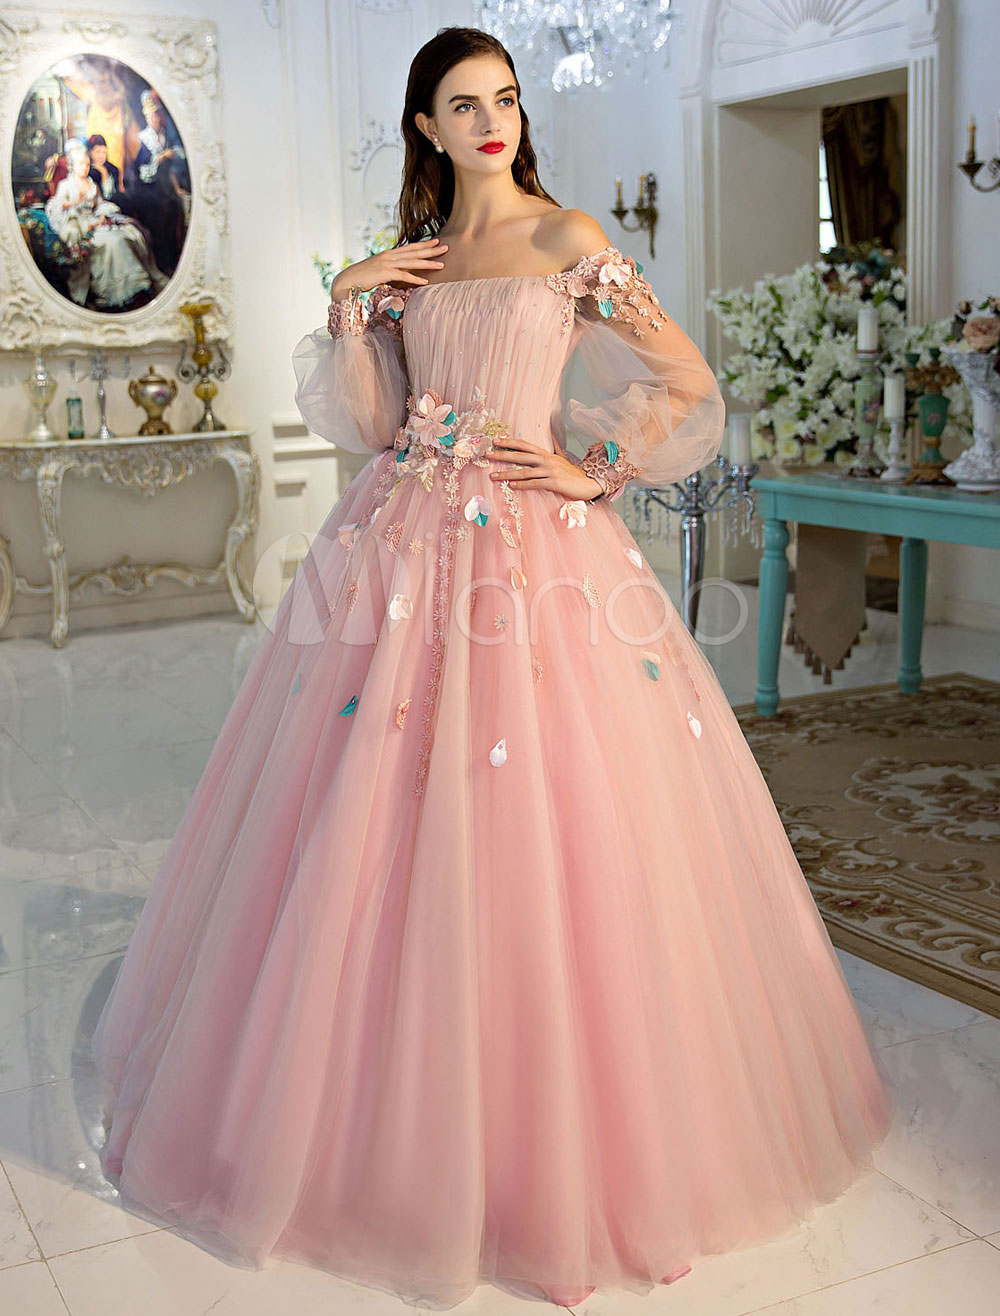 Princess Pageant Dresses Luxury Off The Shoulder Soft Pink Lace ...